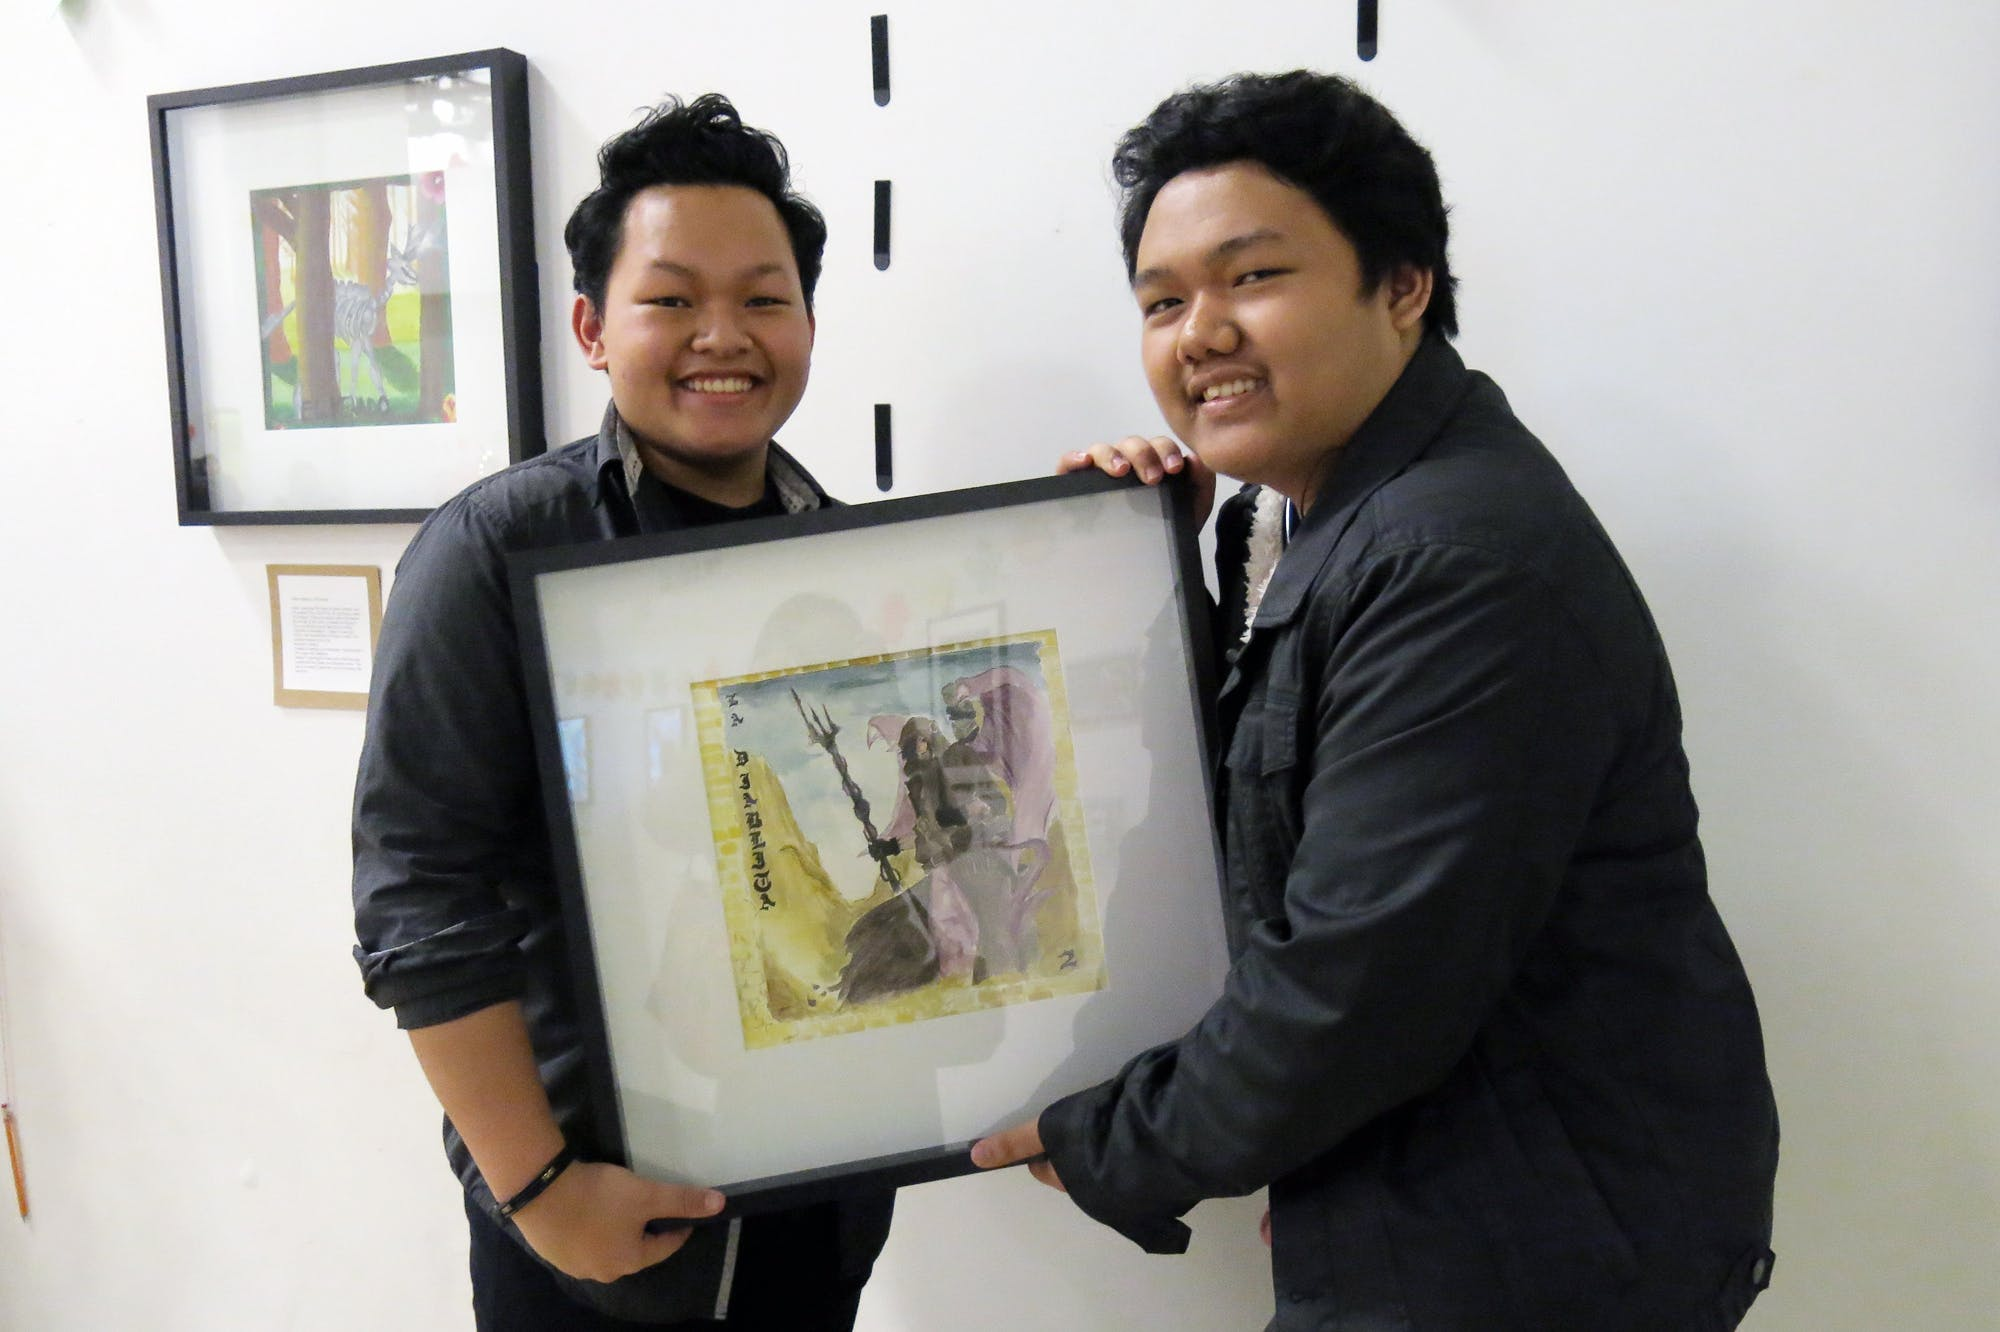 Jeremiah Borbe, a junior at UCLA Community School, helped his brother Joshua, a senior, to display his artwork at the 4th Art Auction.